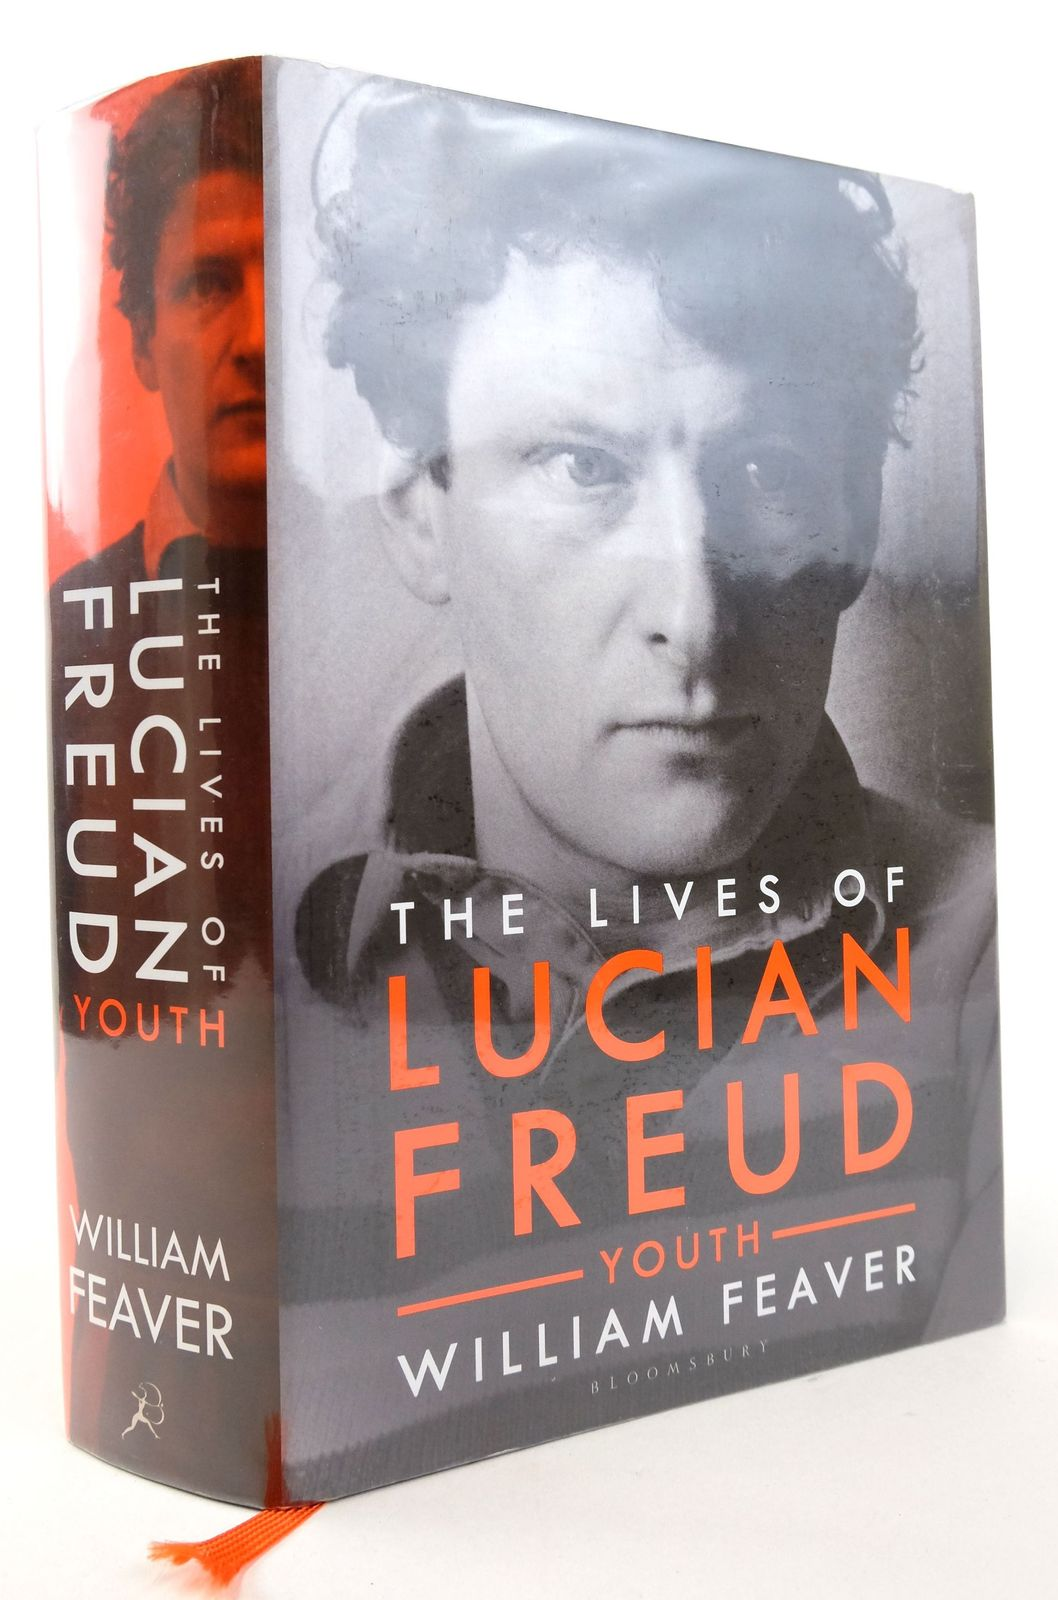 Photo of THE LIVES OF LUCIAN FREUD: YOUTH 1922-68 written by Feaver, William illustrated by Freud, Lucian published by Bloomsbury Publishing Plc (STOCK CODE: 1819789)  for sale by Stella & Rose's Books